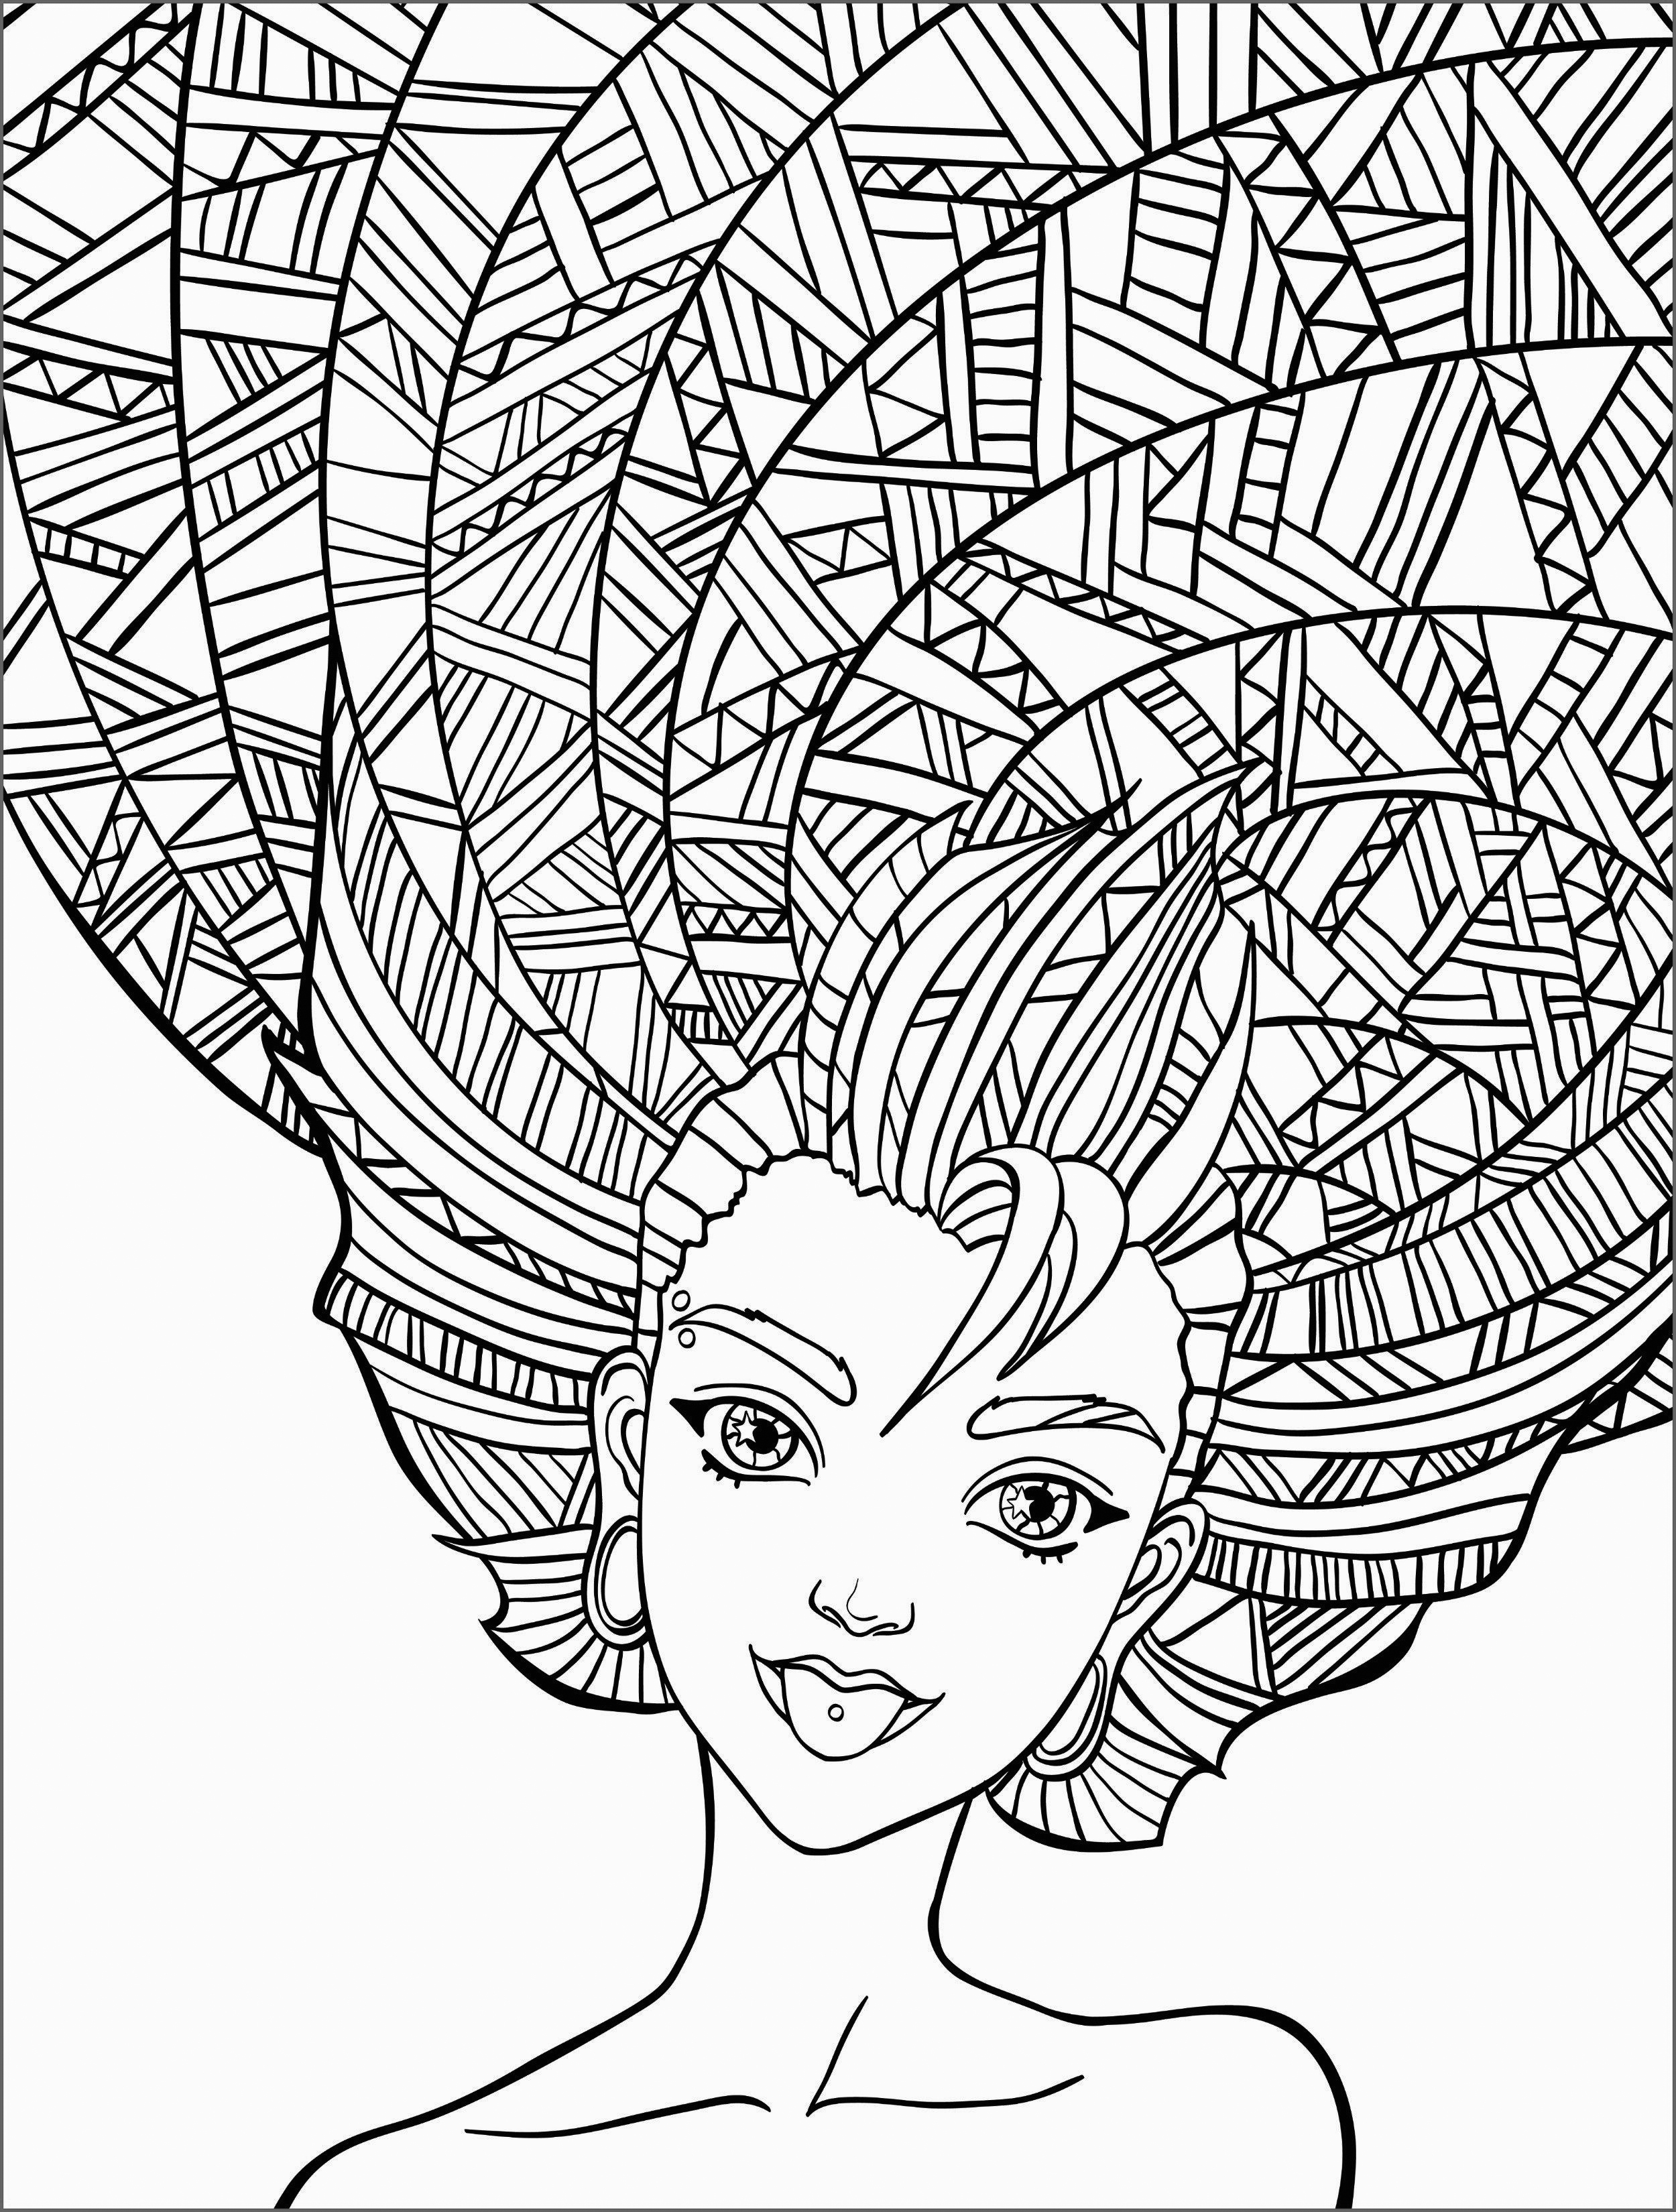 coloring pictures for teenagers coloring pages for adults best coloring pages for kids teenagers for pictures coloring